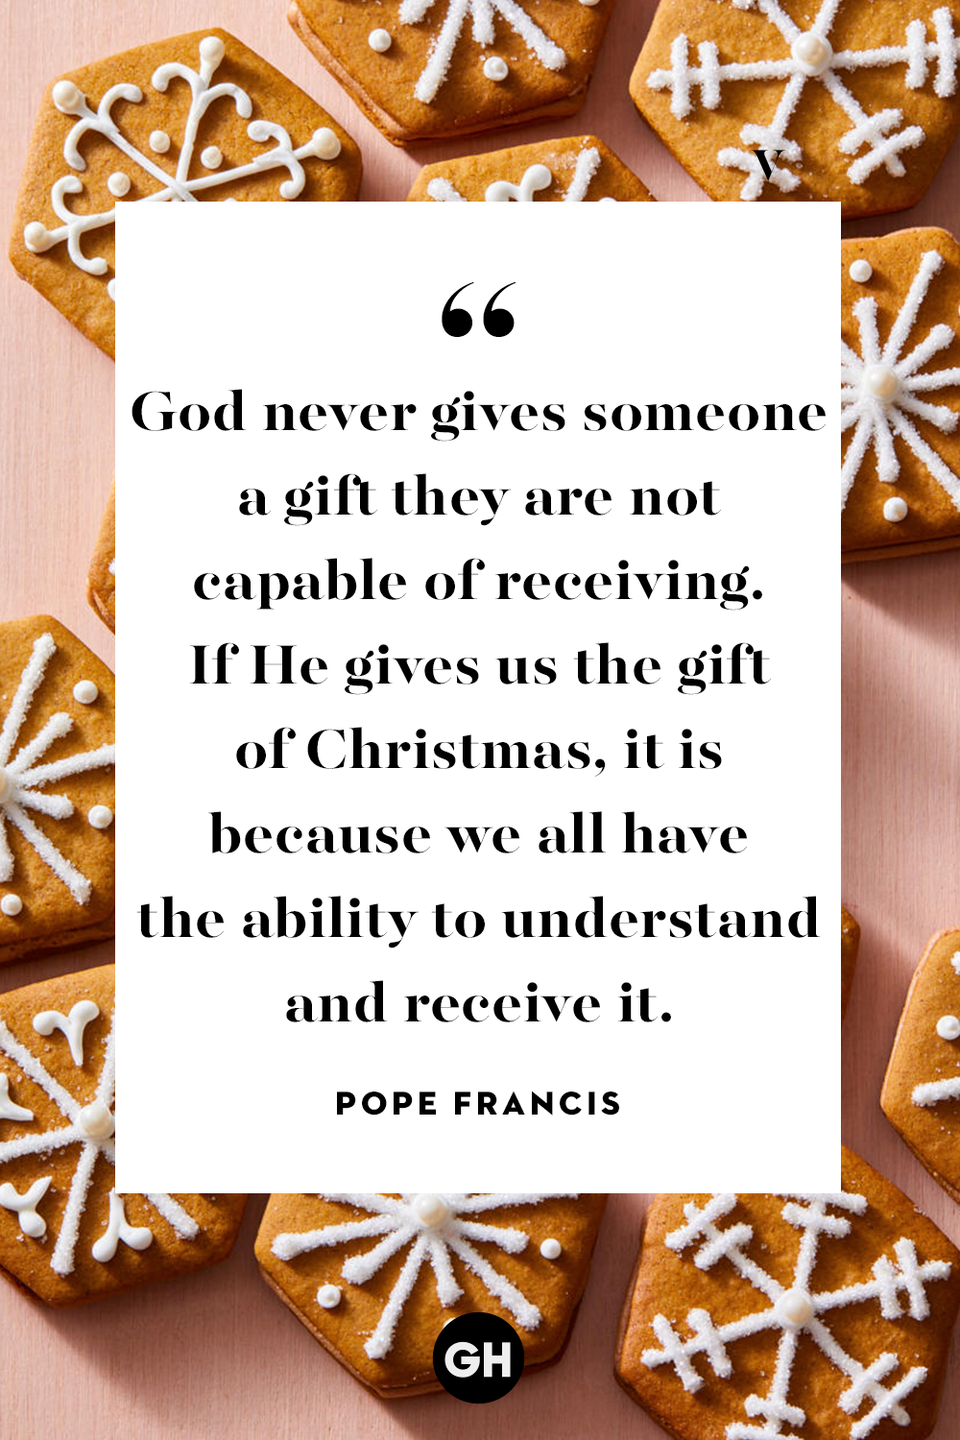 <p>God never gives someone a gift they are not capable of receiving. If He gives us the gift of Christmas, it is because we all have the ability to understand and receive it. </p>